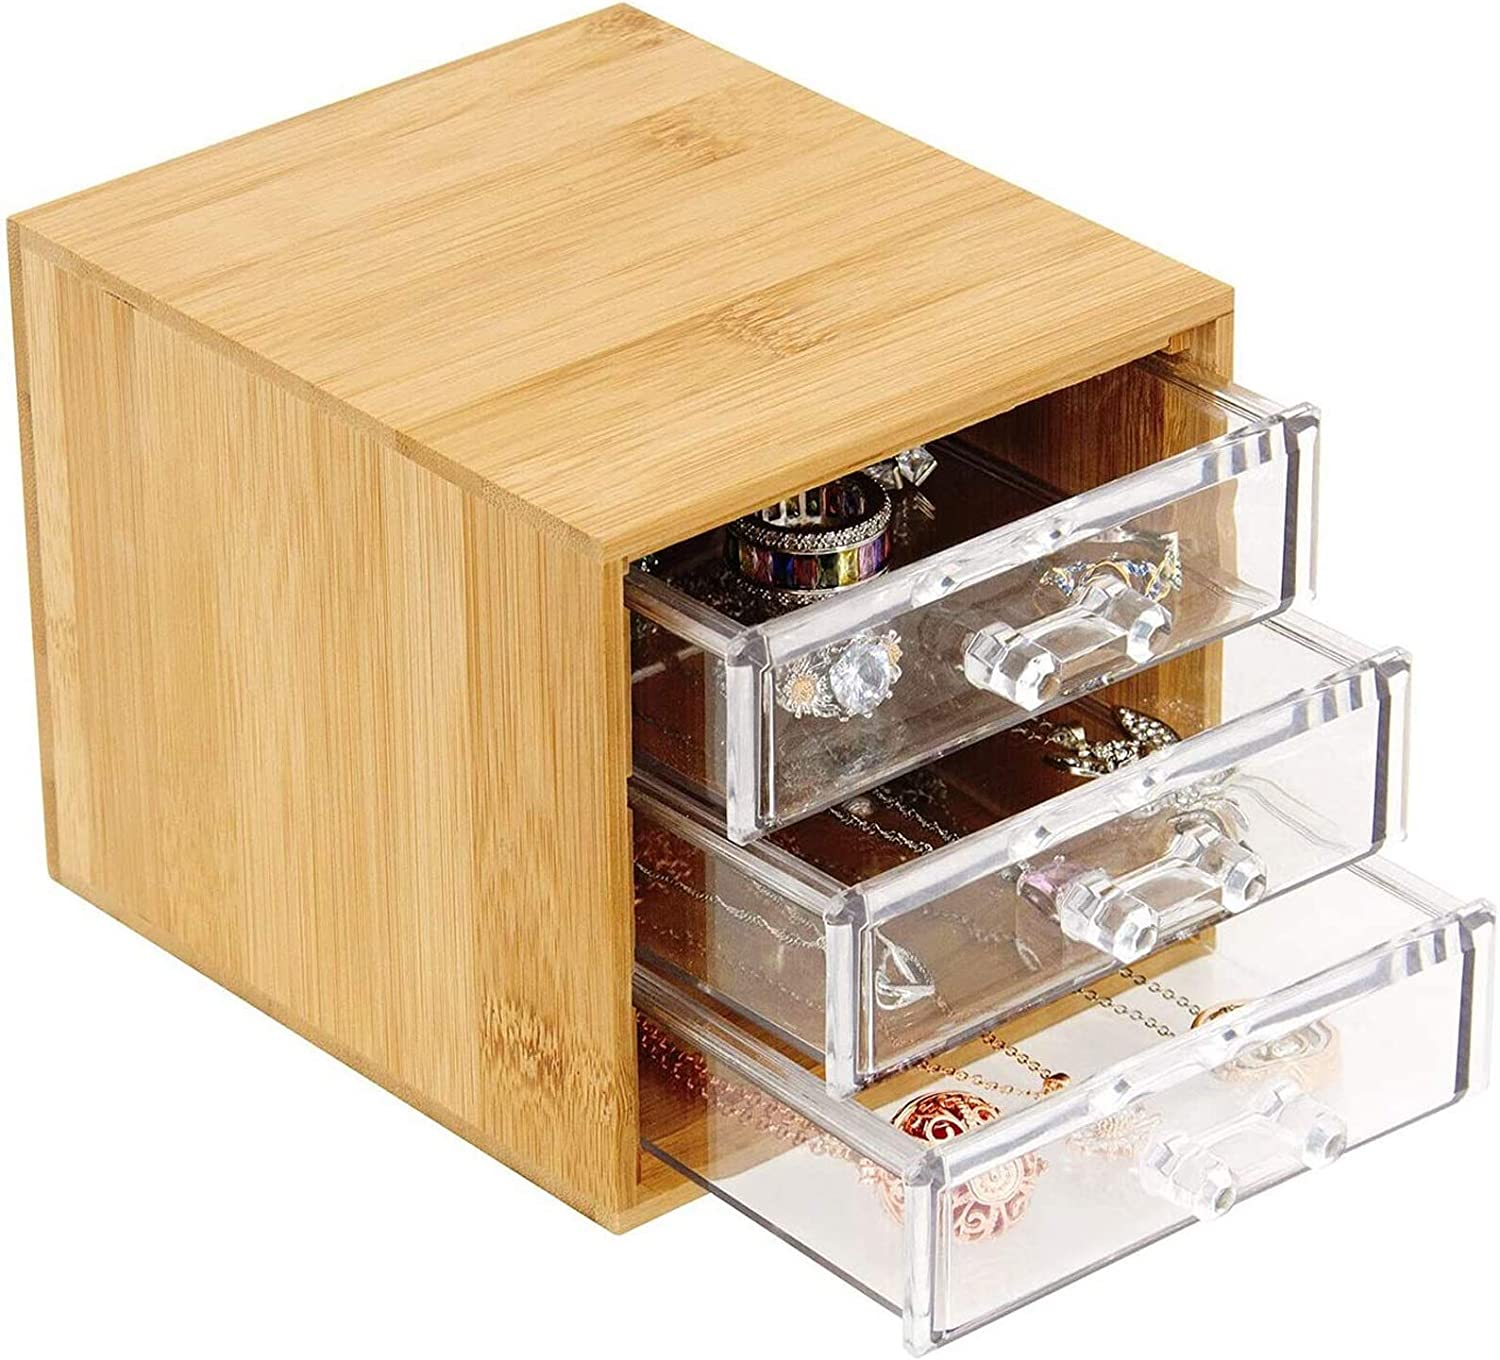 HMMJ Makeup Organiser Max 66% OFF for Bathroom Organizer 3 Free shipping anywhere in the nation Jewelry with Acry